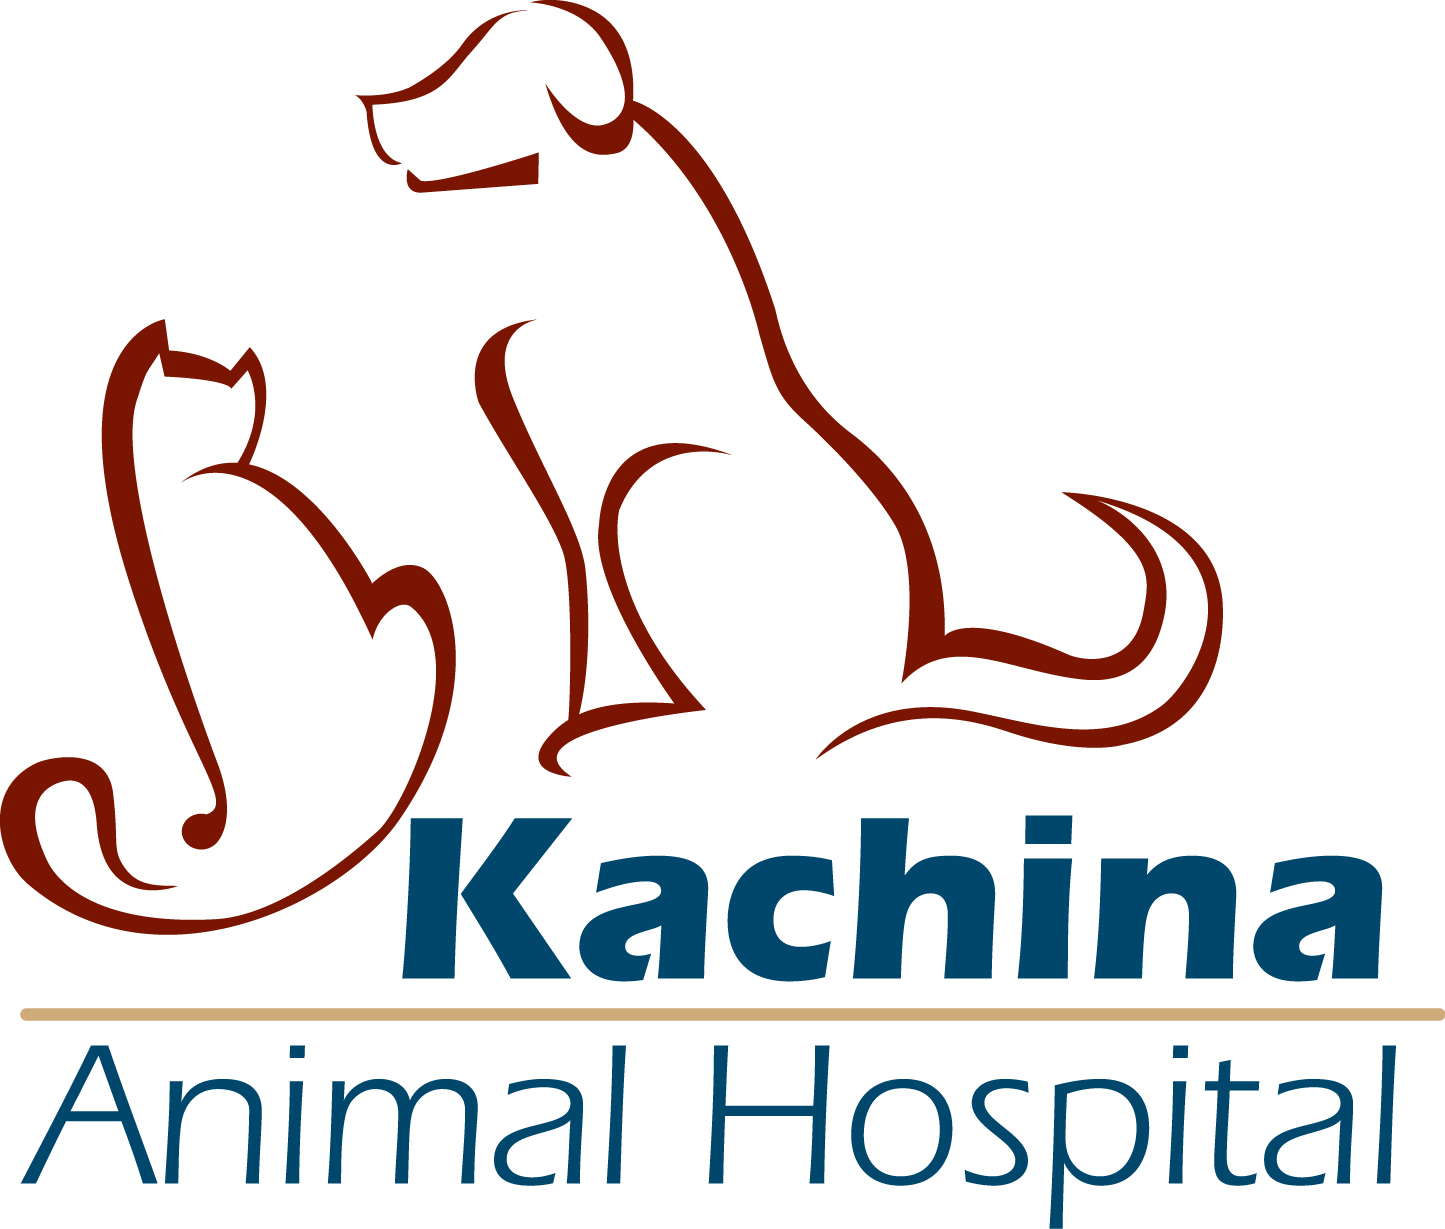 Kachina Animal Hospital